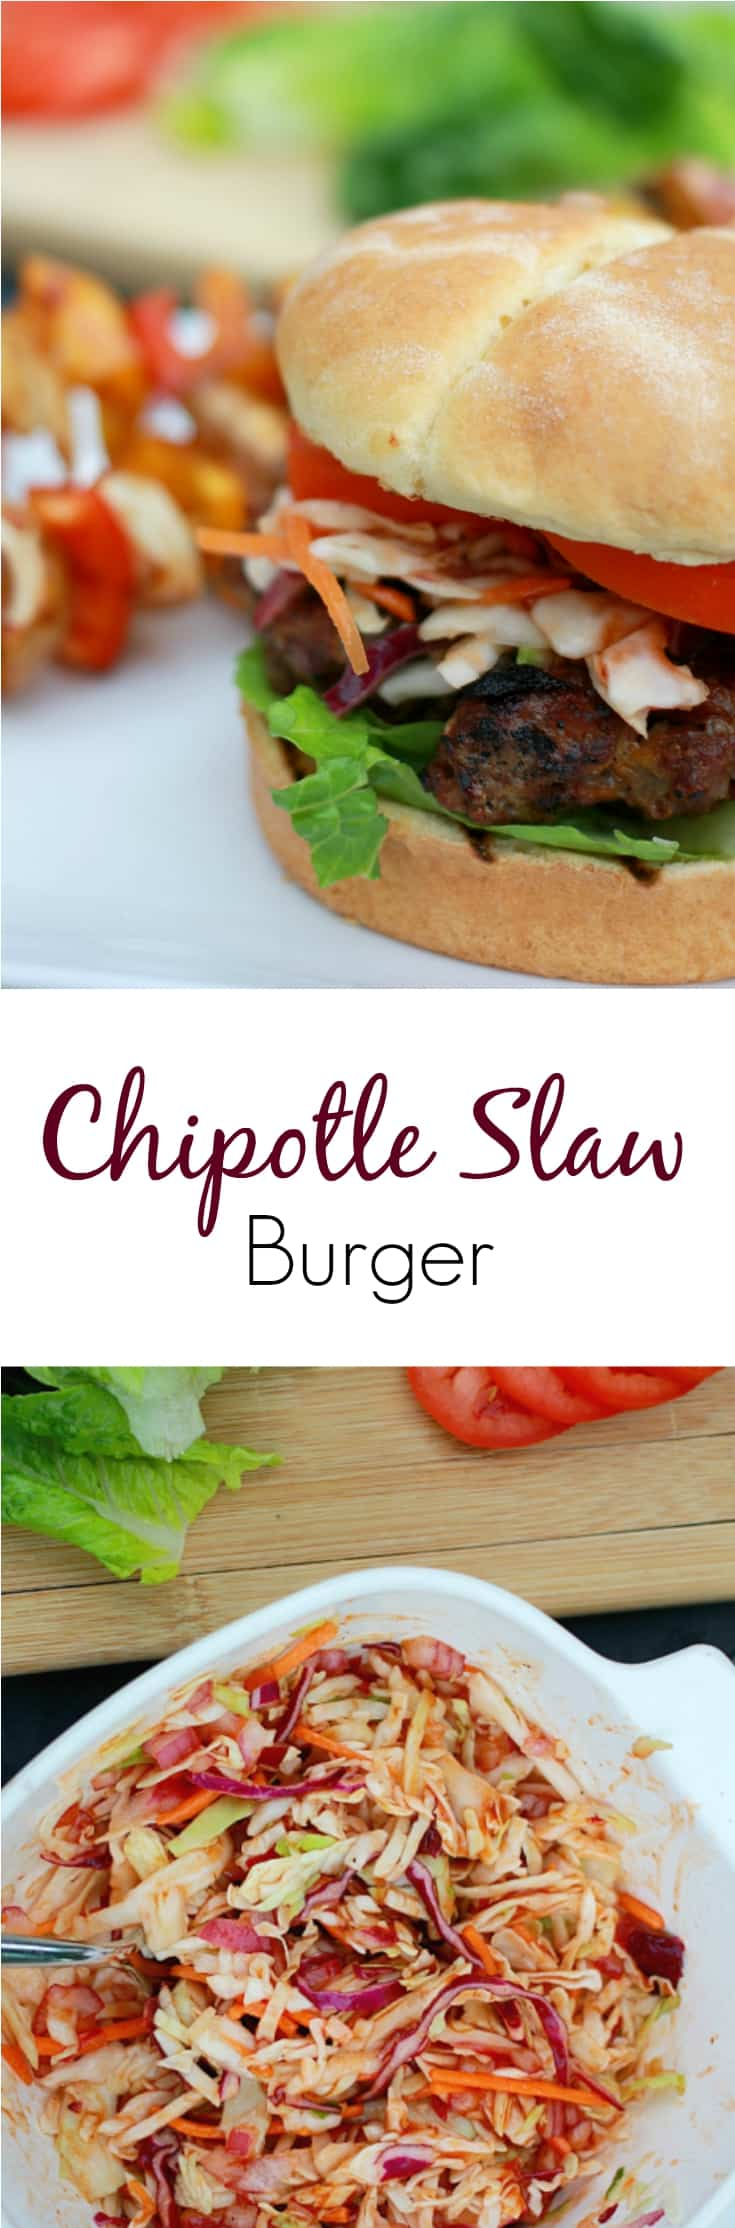 Chipotle Slaw Burger recipe